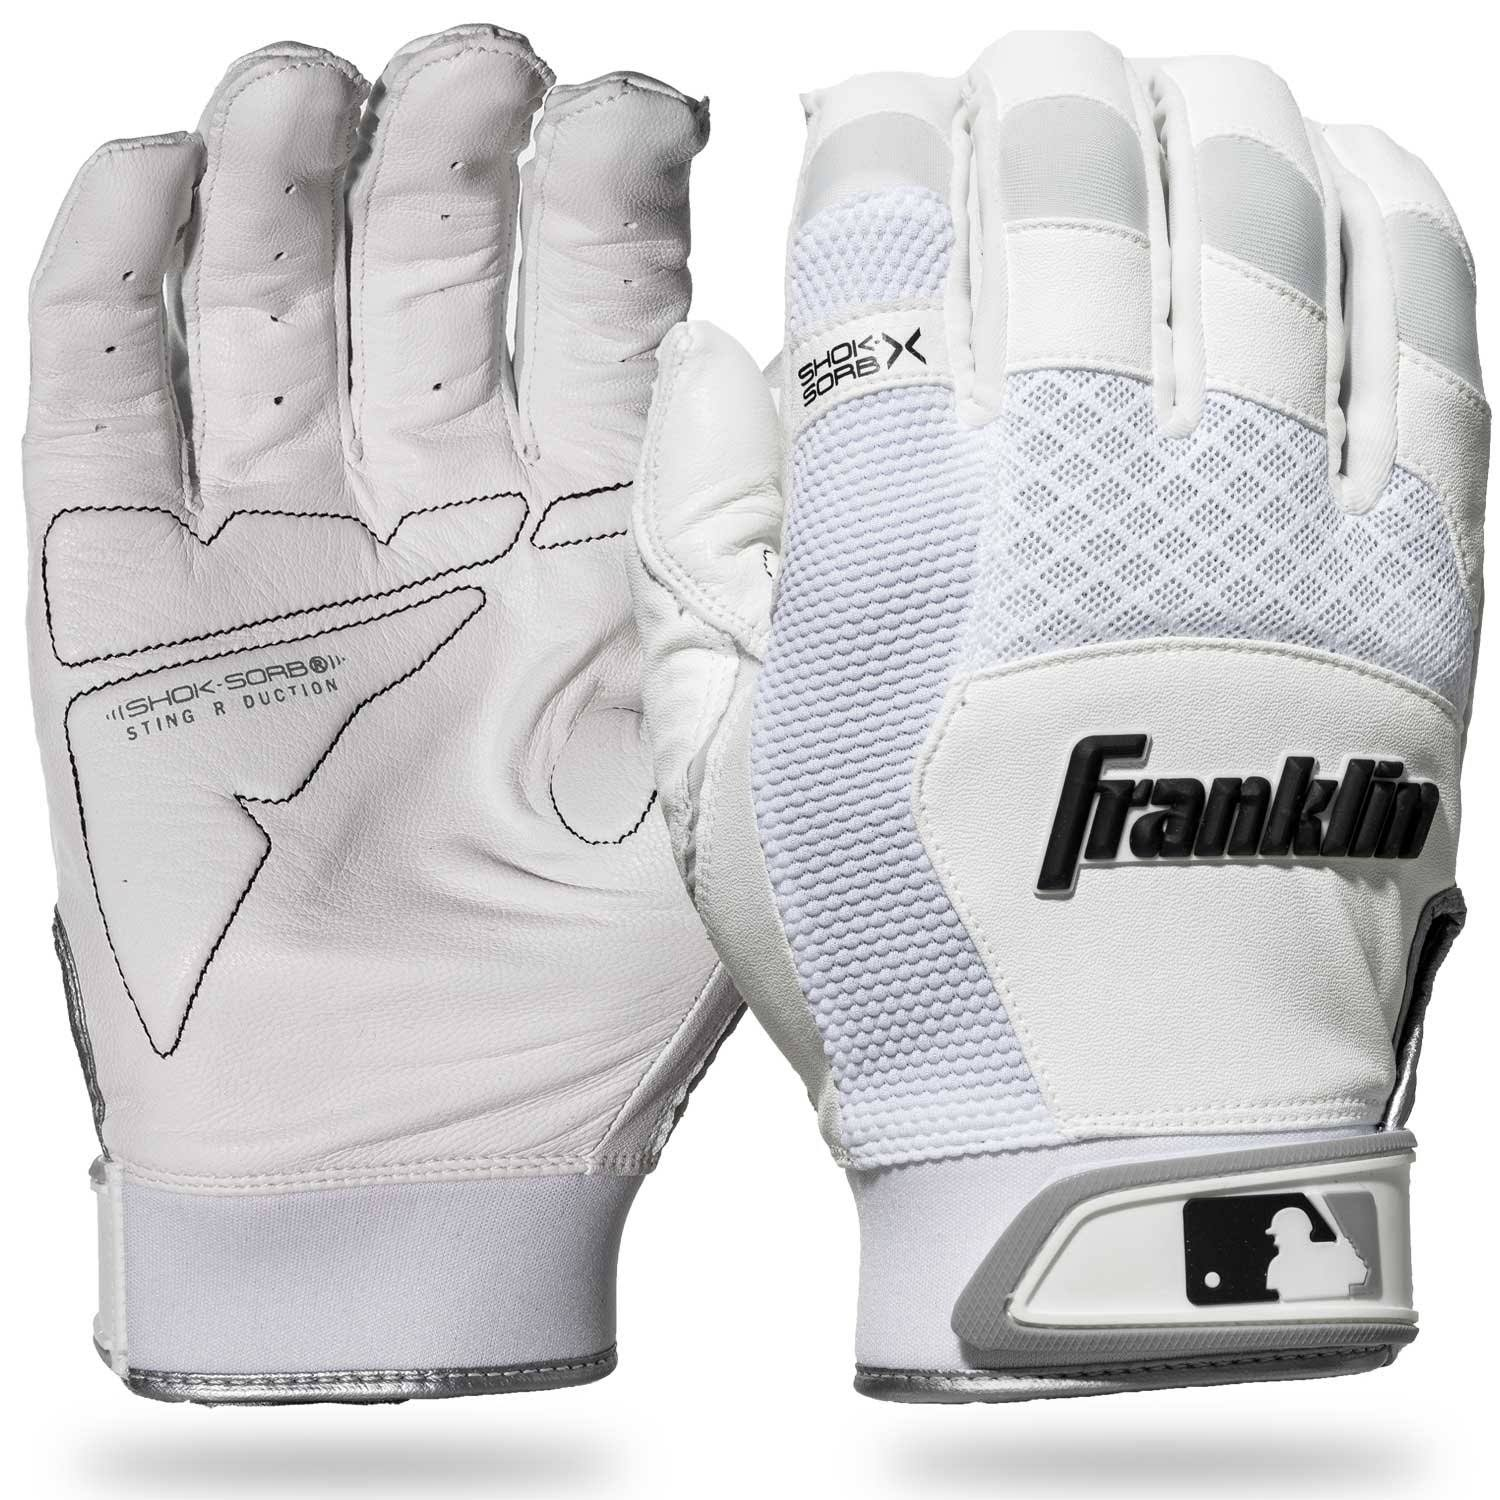 Franklin Batting Gloves, Shok-Sorb X, Medium, Adult